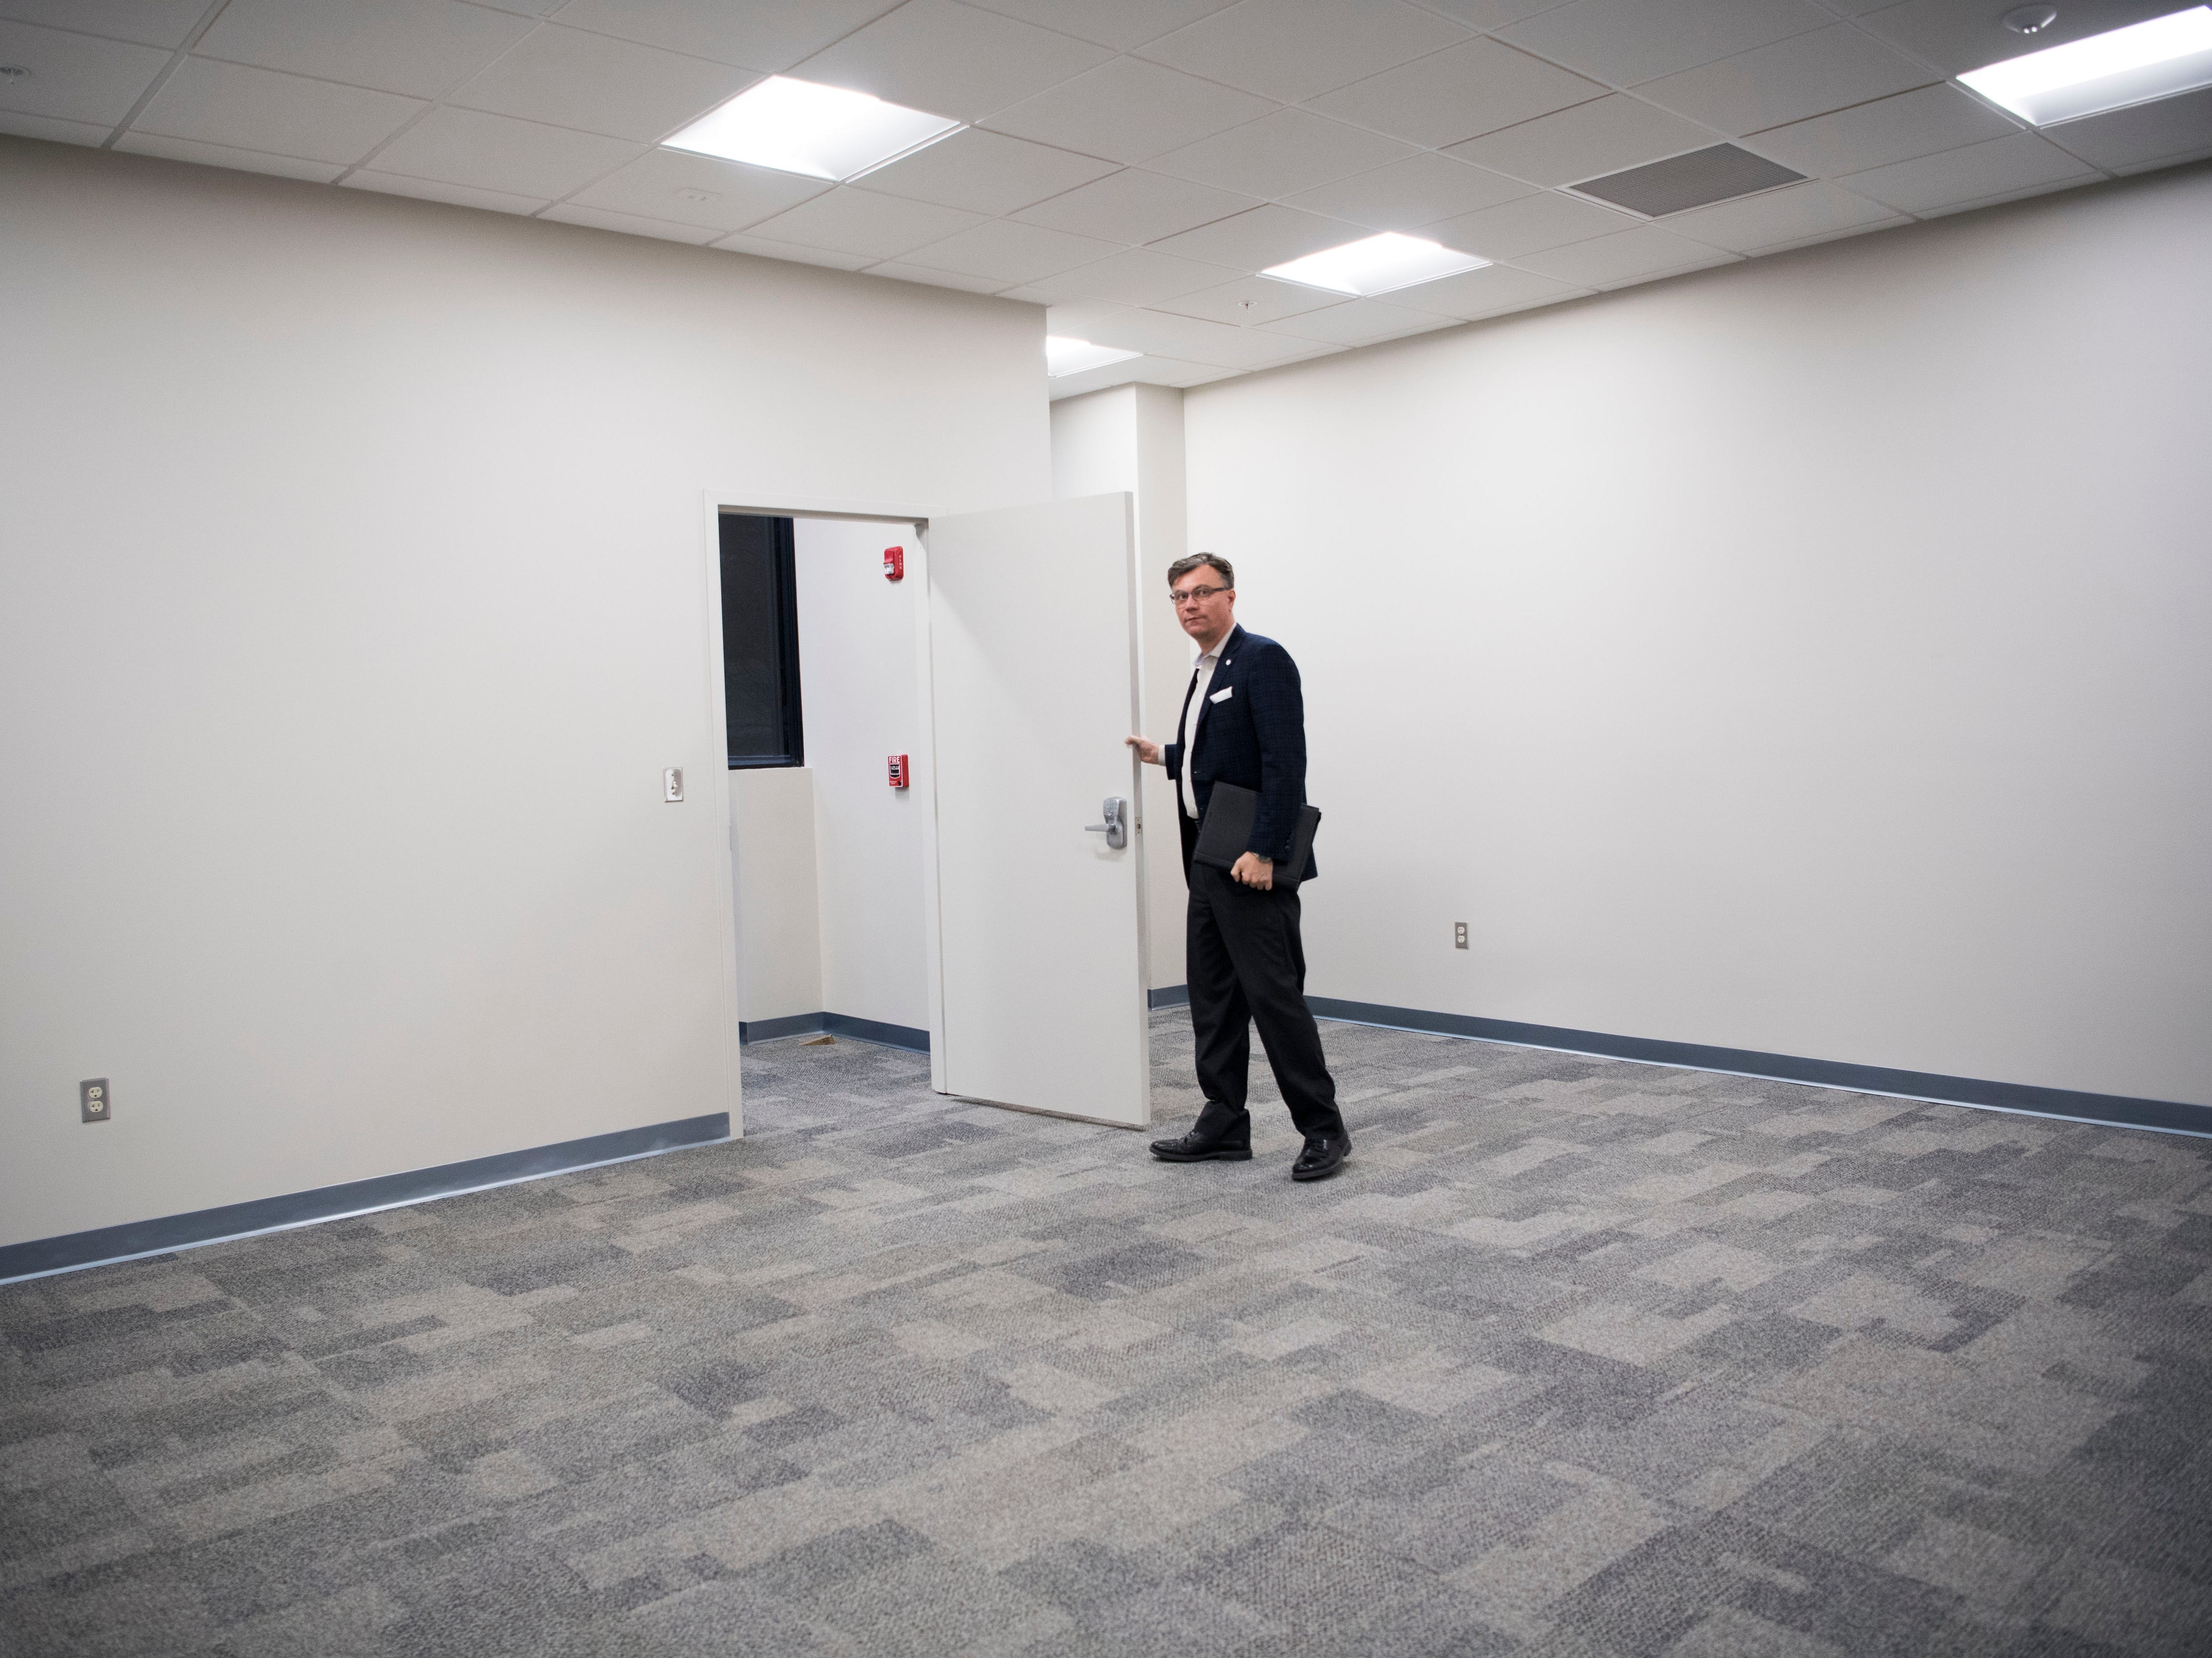 Rick Chinn shows off a room with a private outside entrance at Ts117, a new coworking space in Oak Ridge run by himself and his brother Ryan, Tuesday, Feb. 19, 2019.